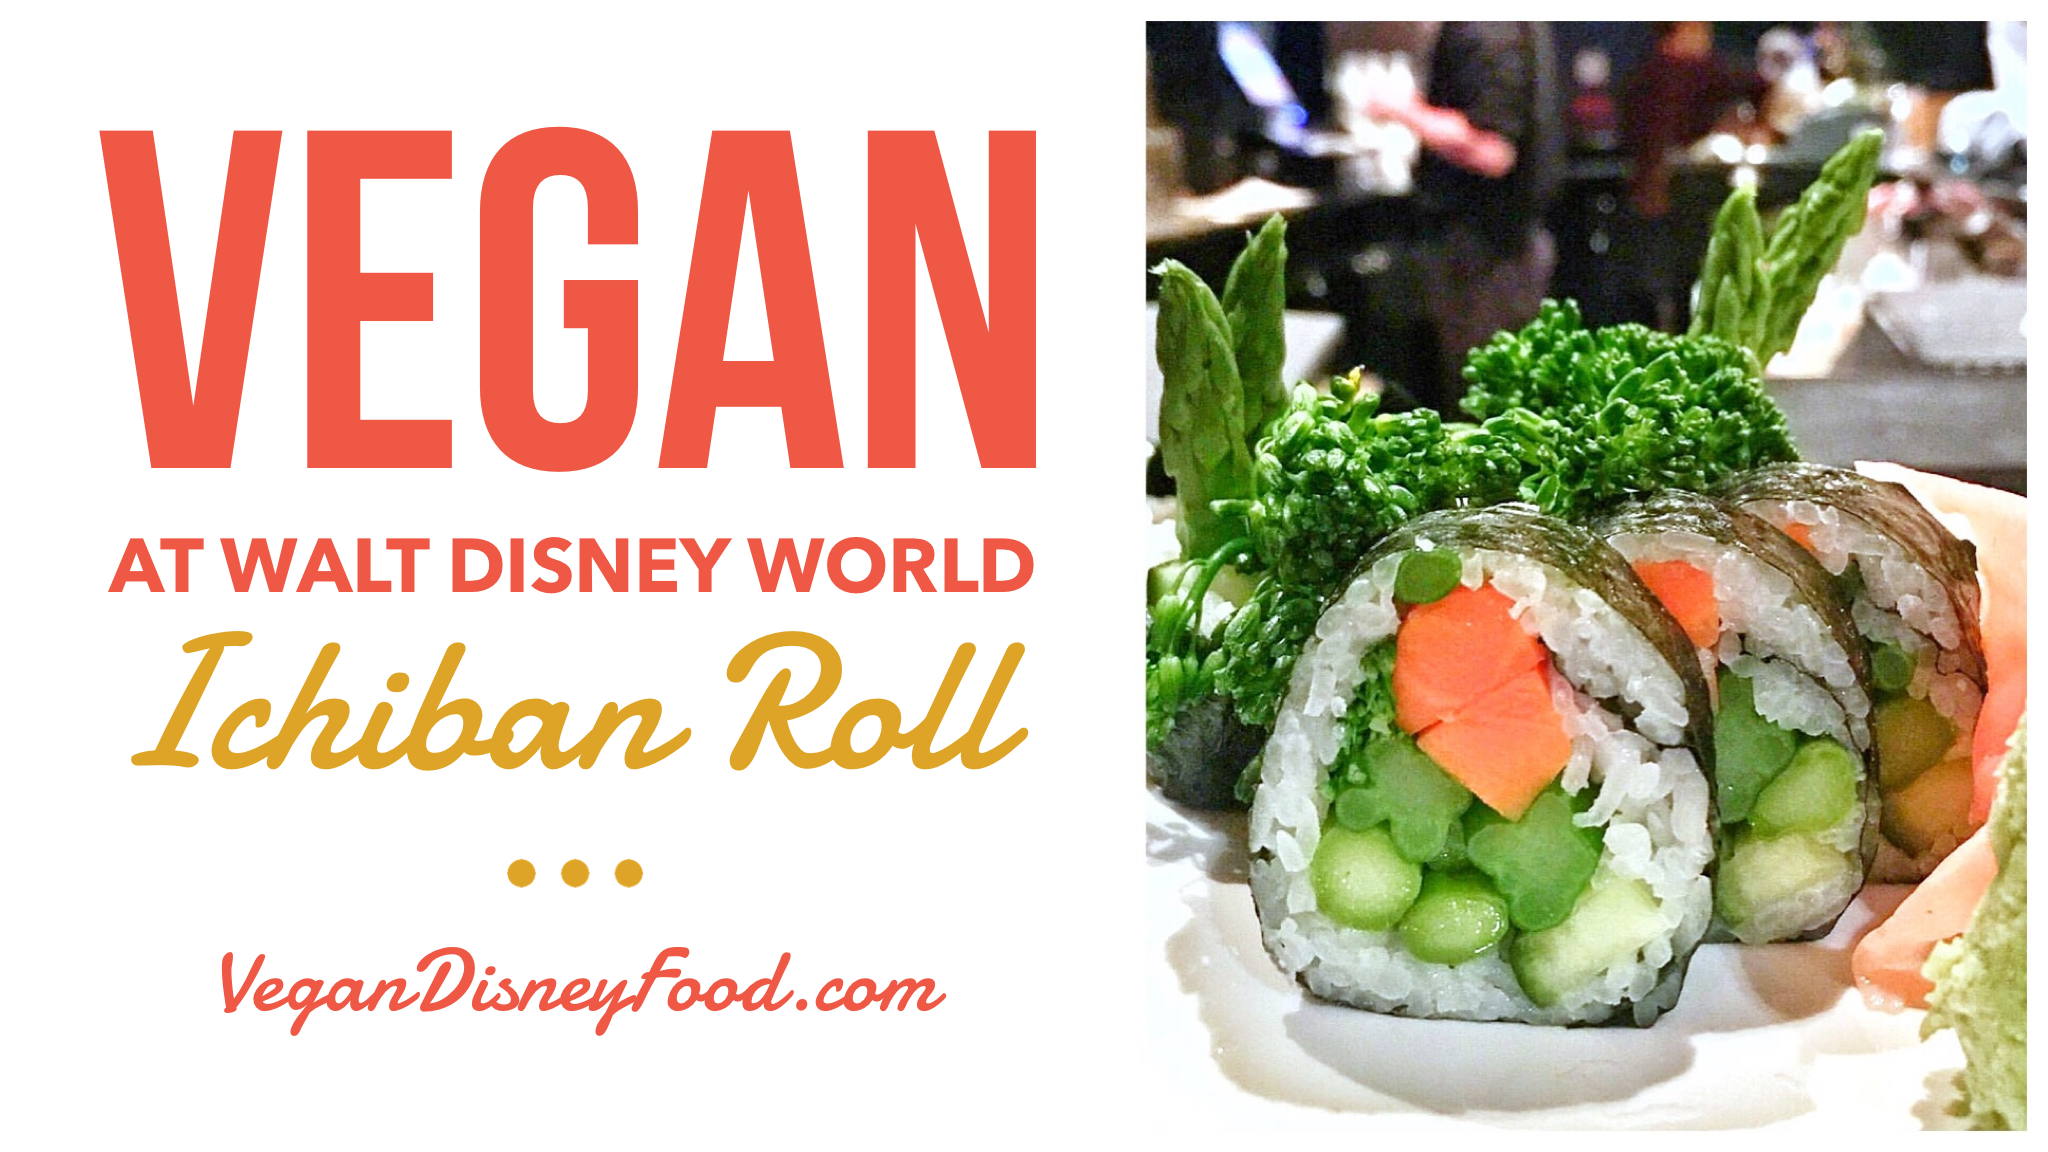 Vegan Walt Disney World - Ichiban Sushi Roll from Kimonos in the Swan